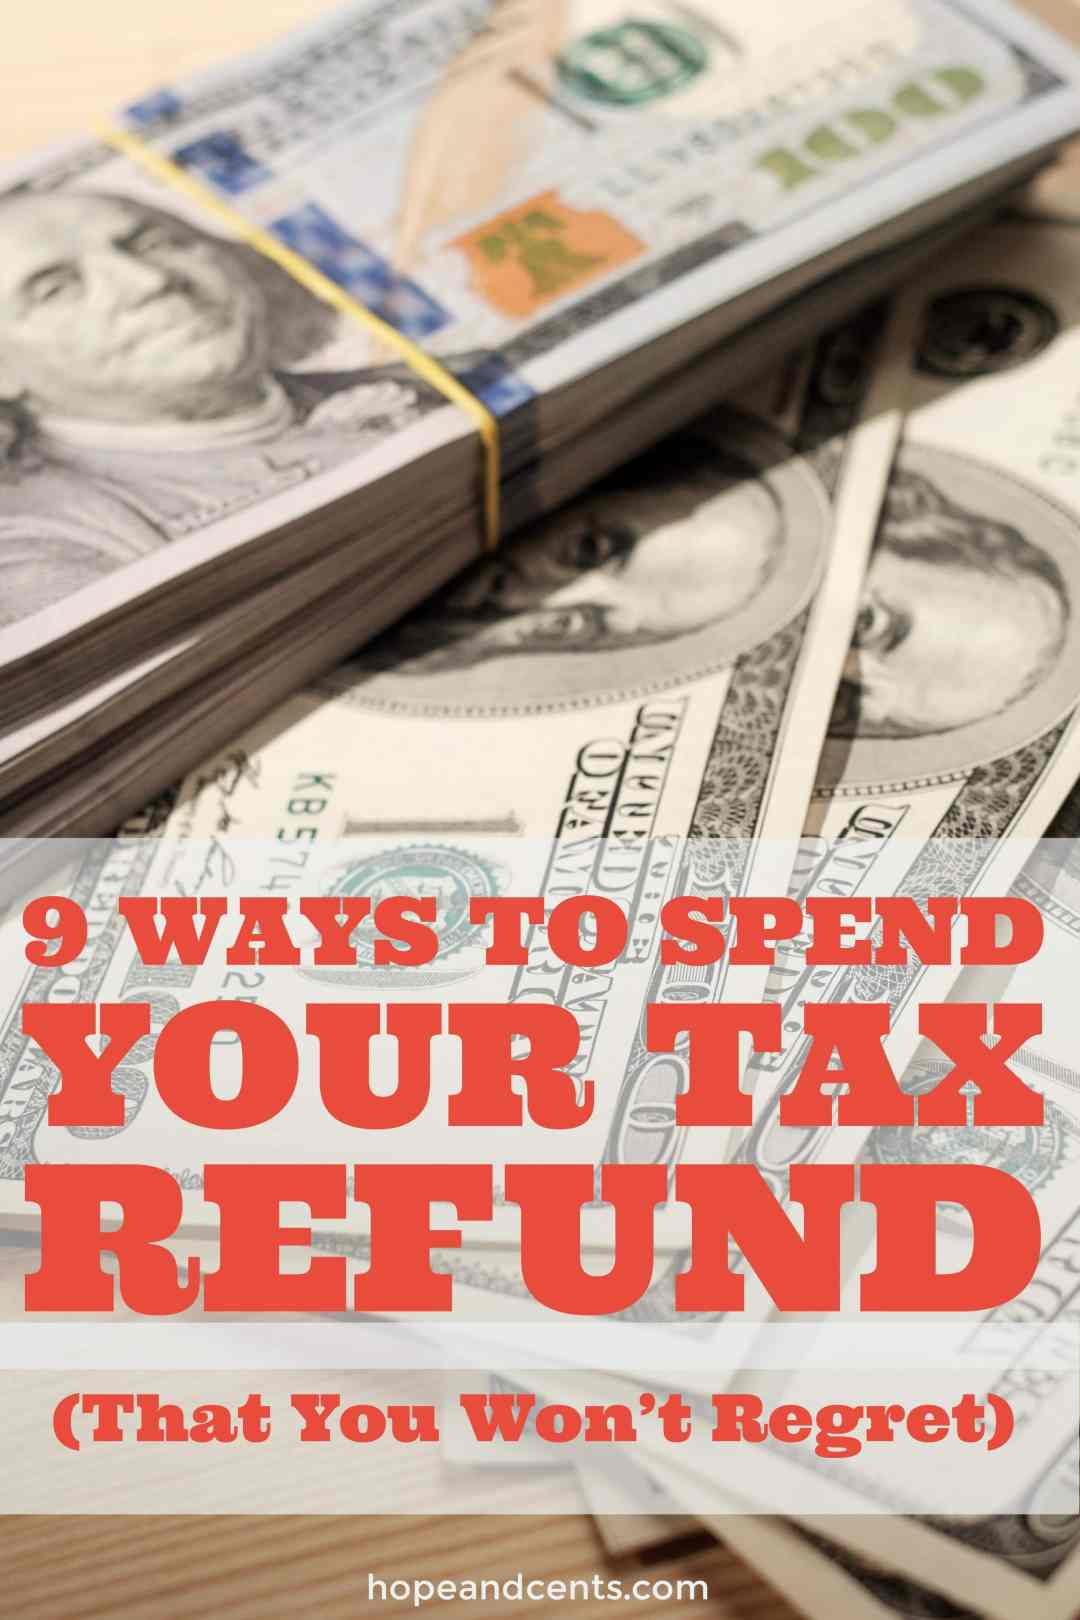 Are you expecting a tax refund? While there are many ways you can spend it, choose a path that you won't regret.